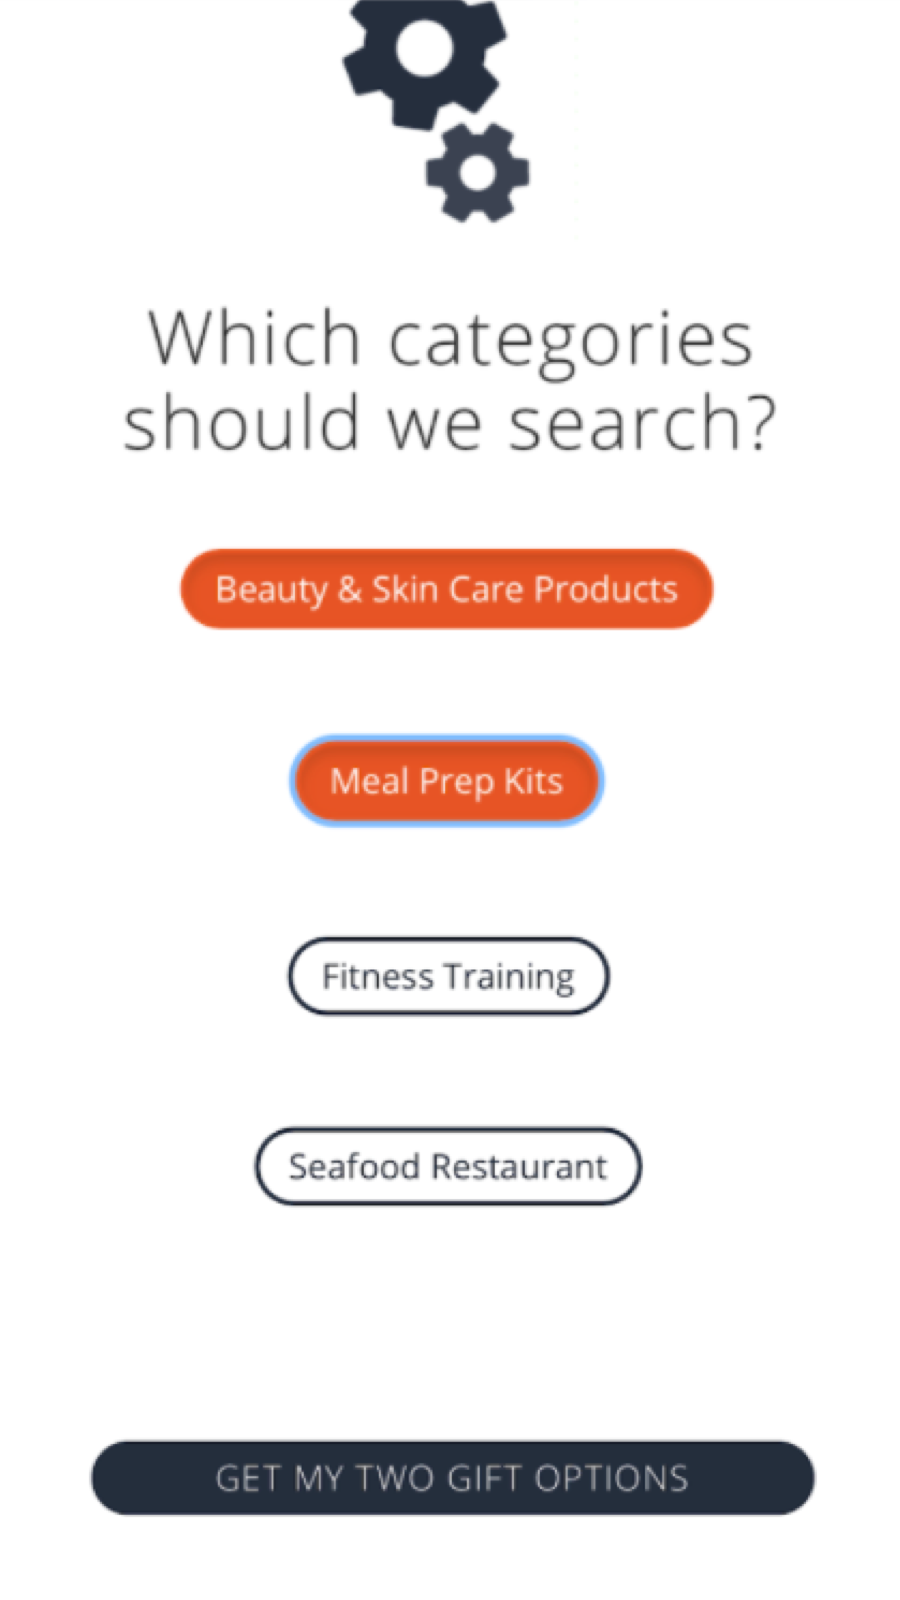 Select categories of businesses you'd like to discover